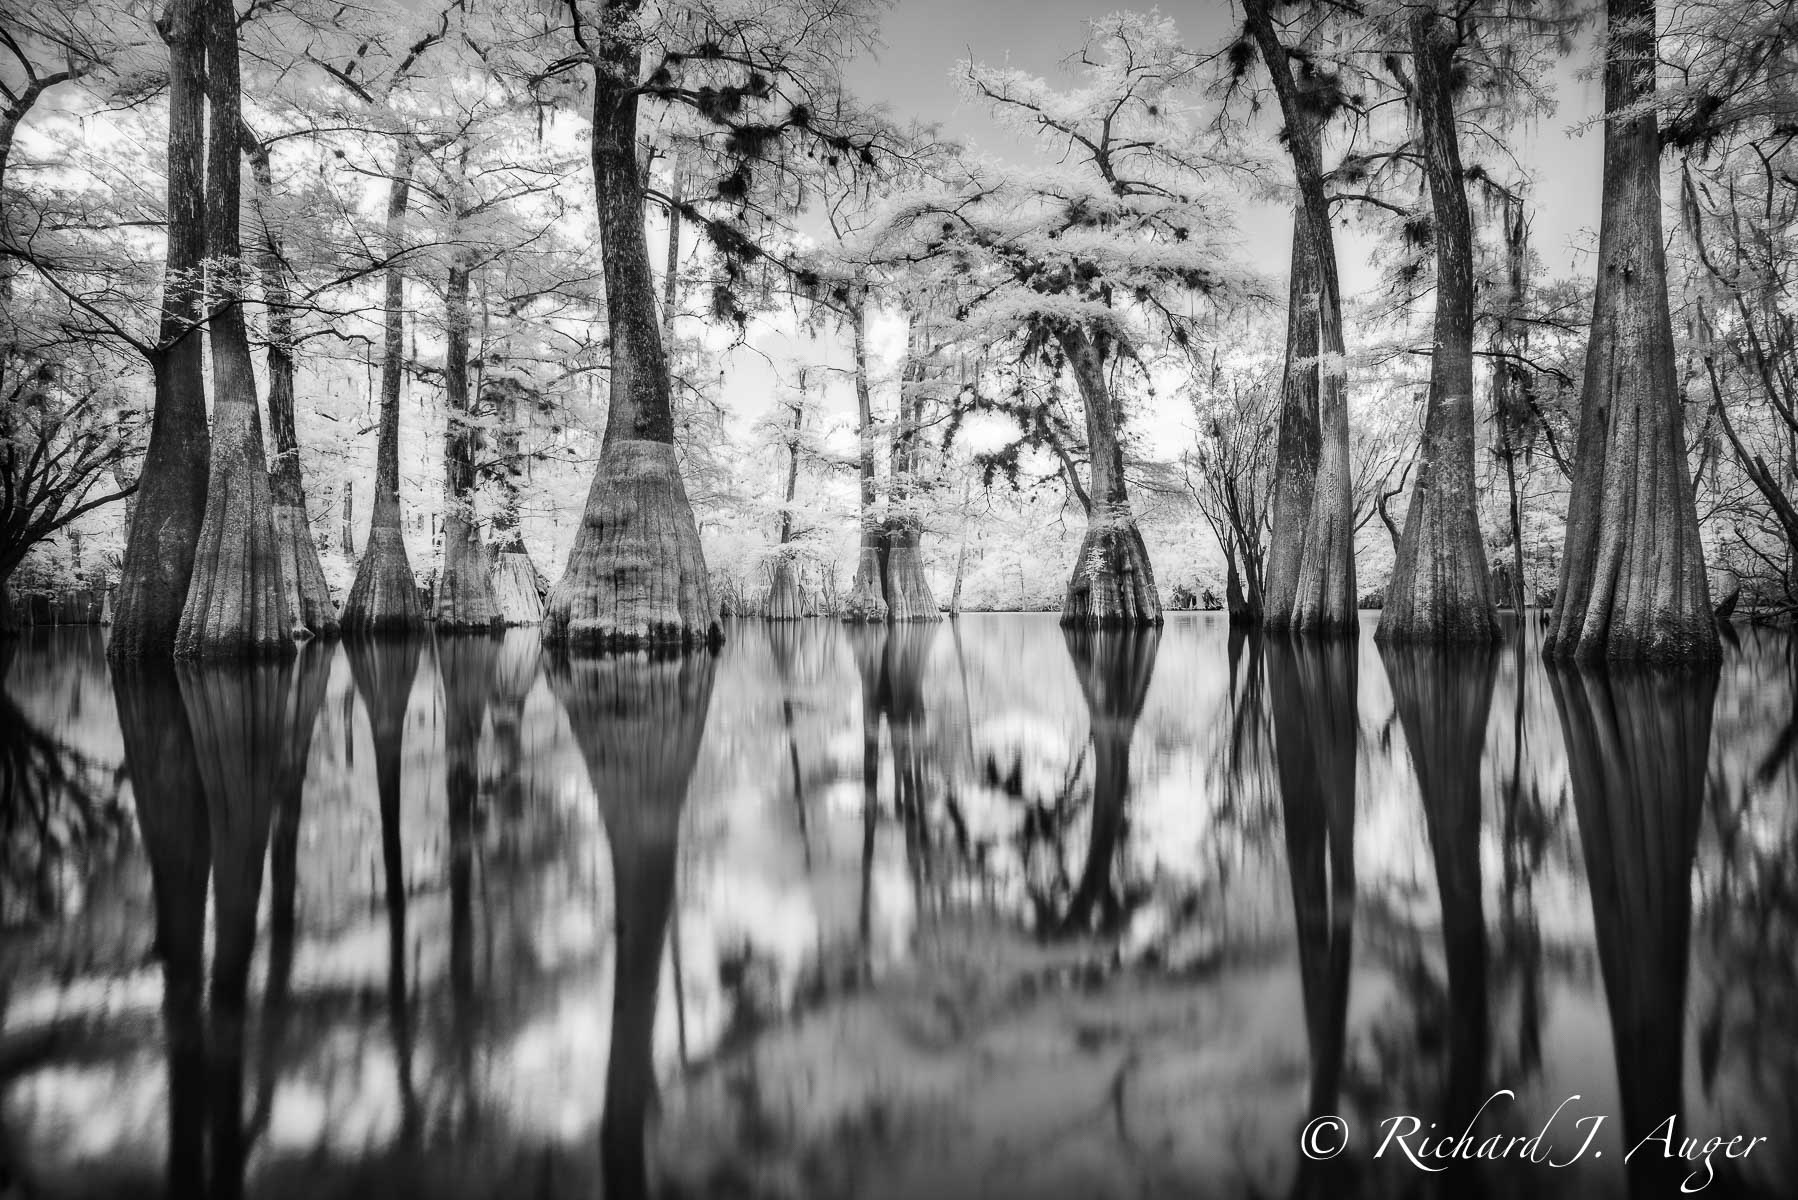 Suwannee River, Florida, Cypress, Swamp, Reflections, nature, water, photographer, black and white